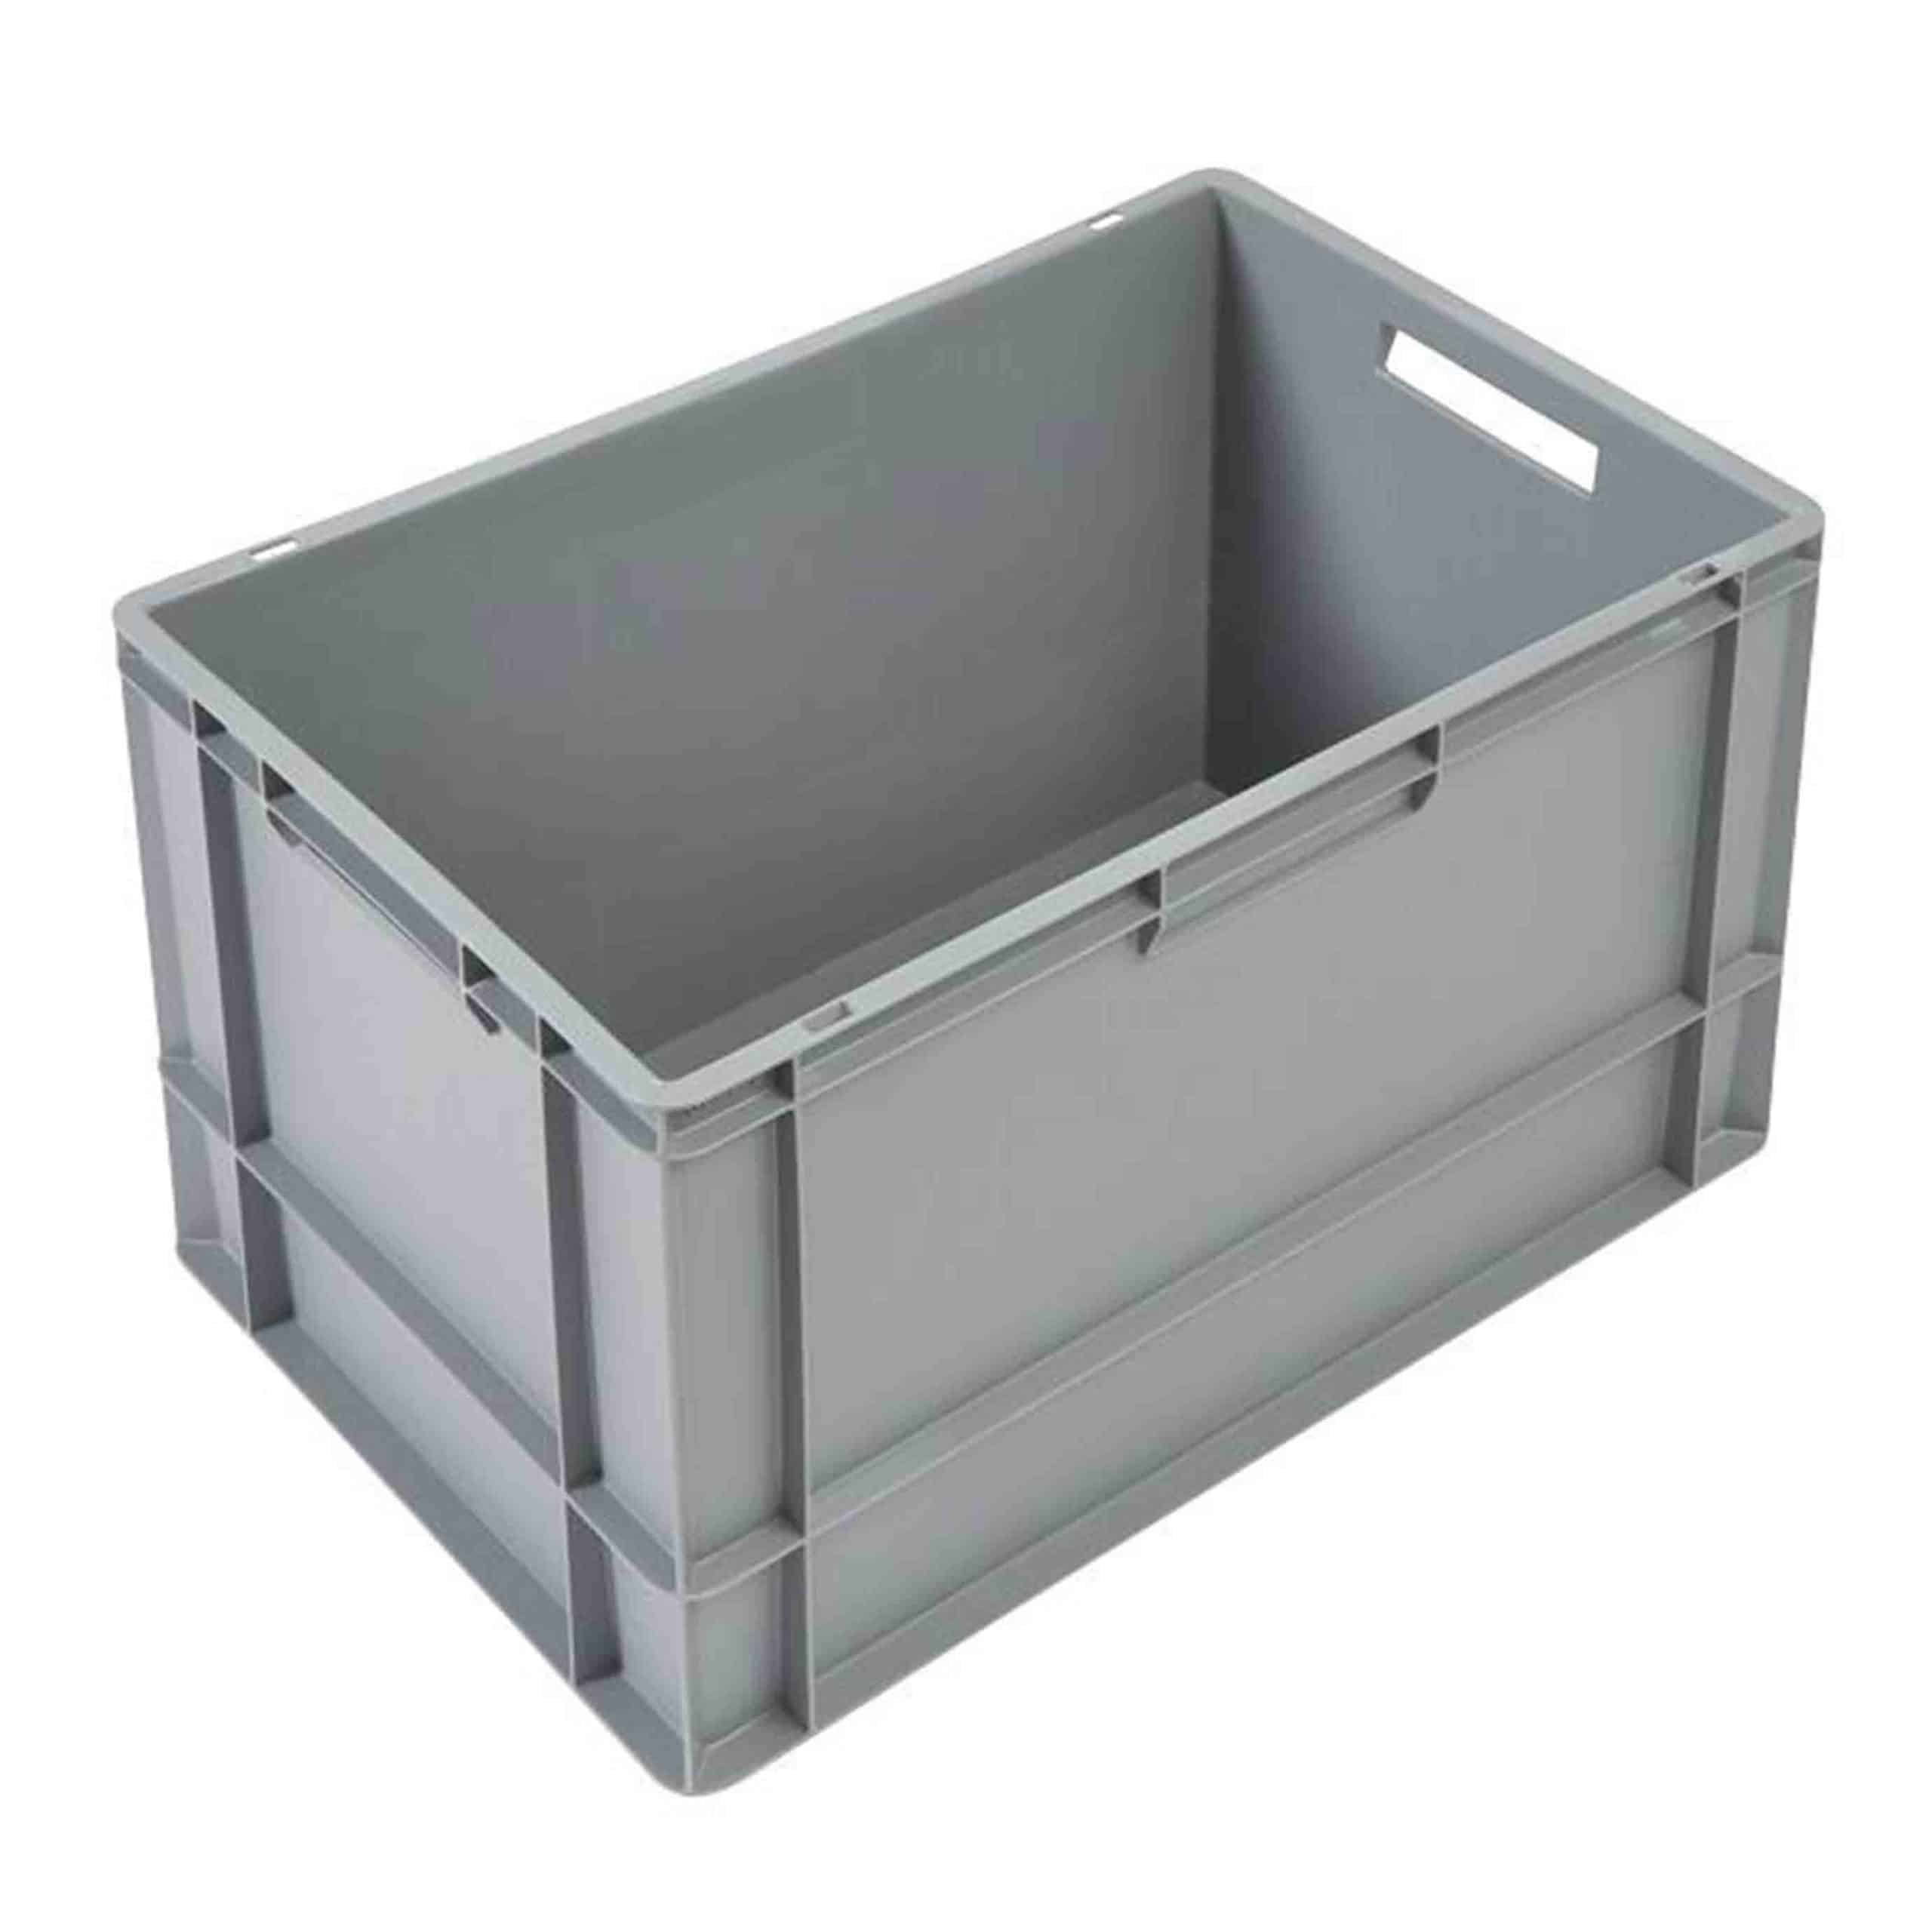 76 Litre Euro Containers